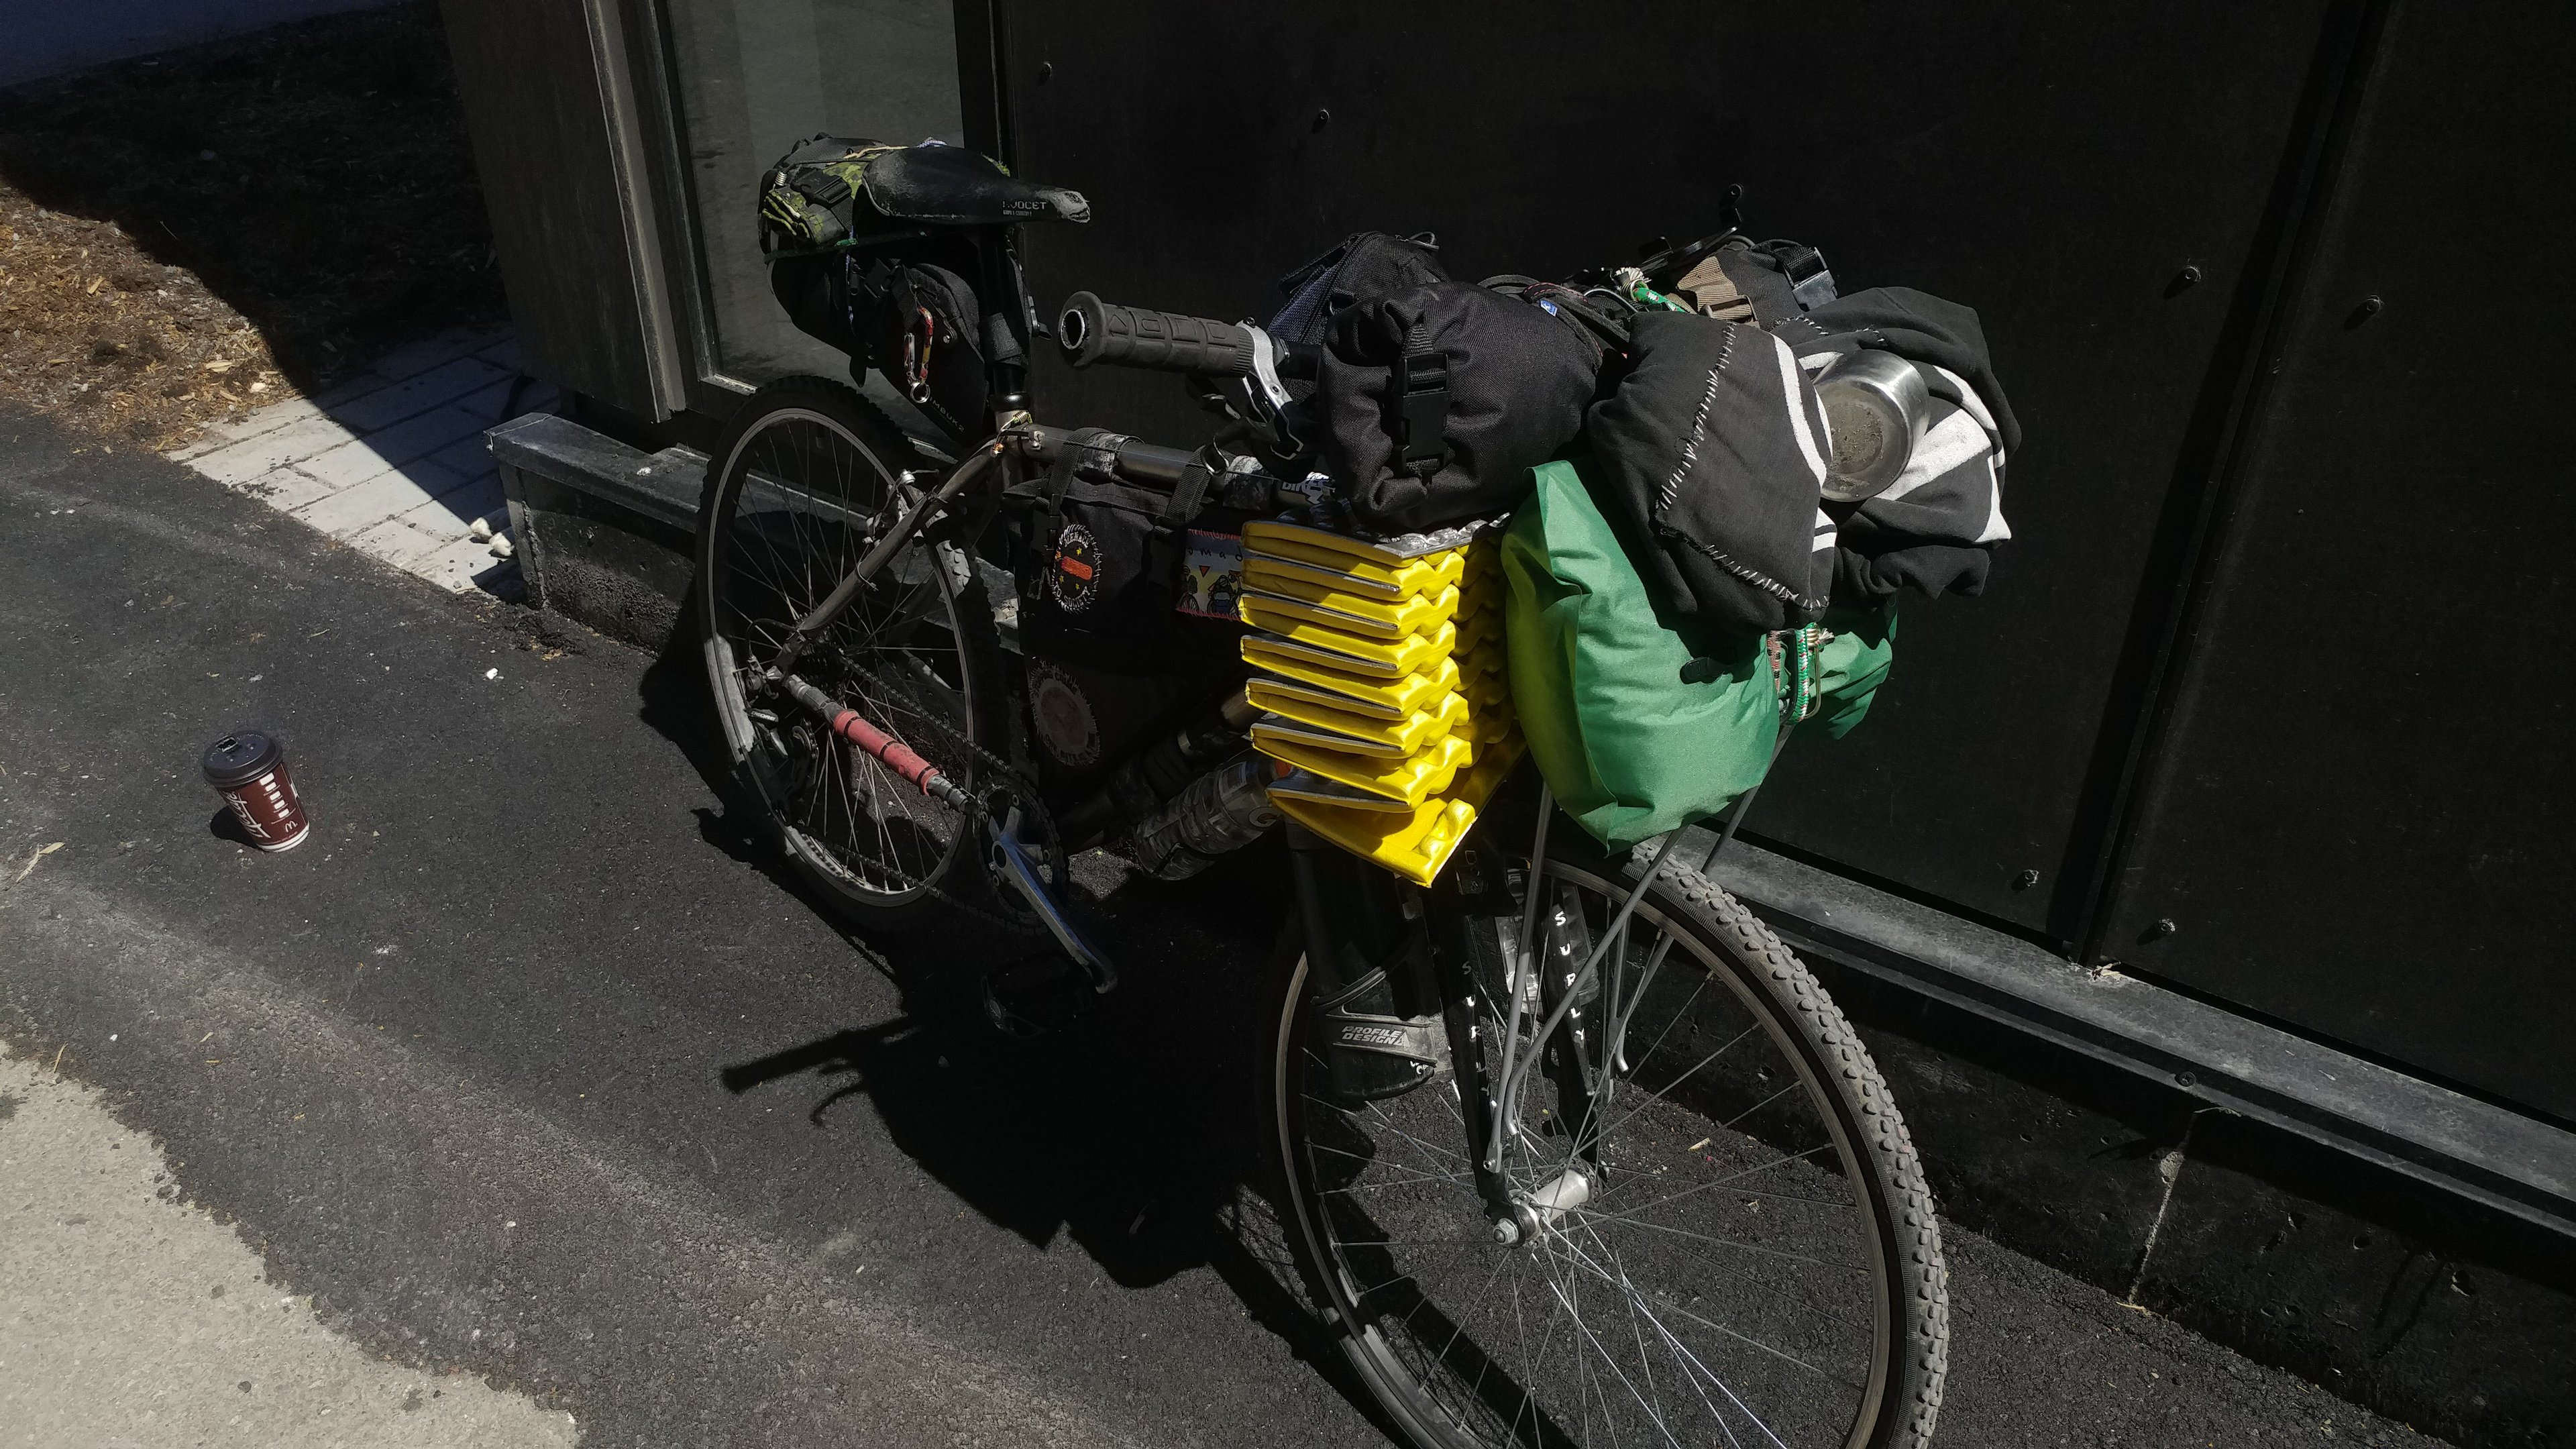 img_20180512_142623-jpg.43082_Picture of your loaded bicycle_Bike Touring_Squat the Planet_12:59 PM